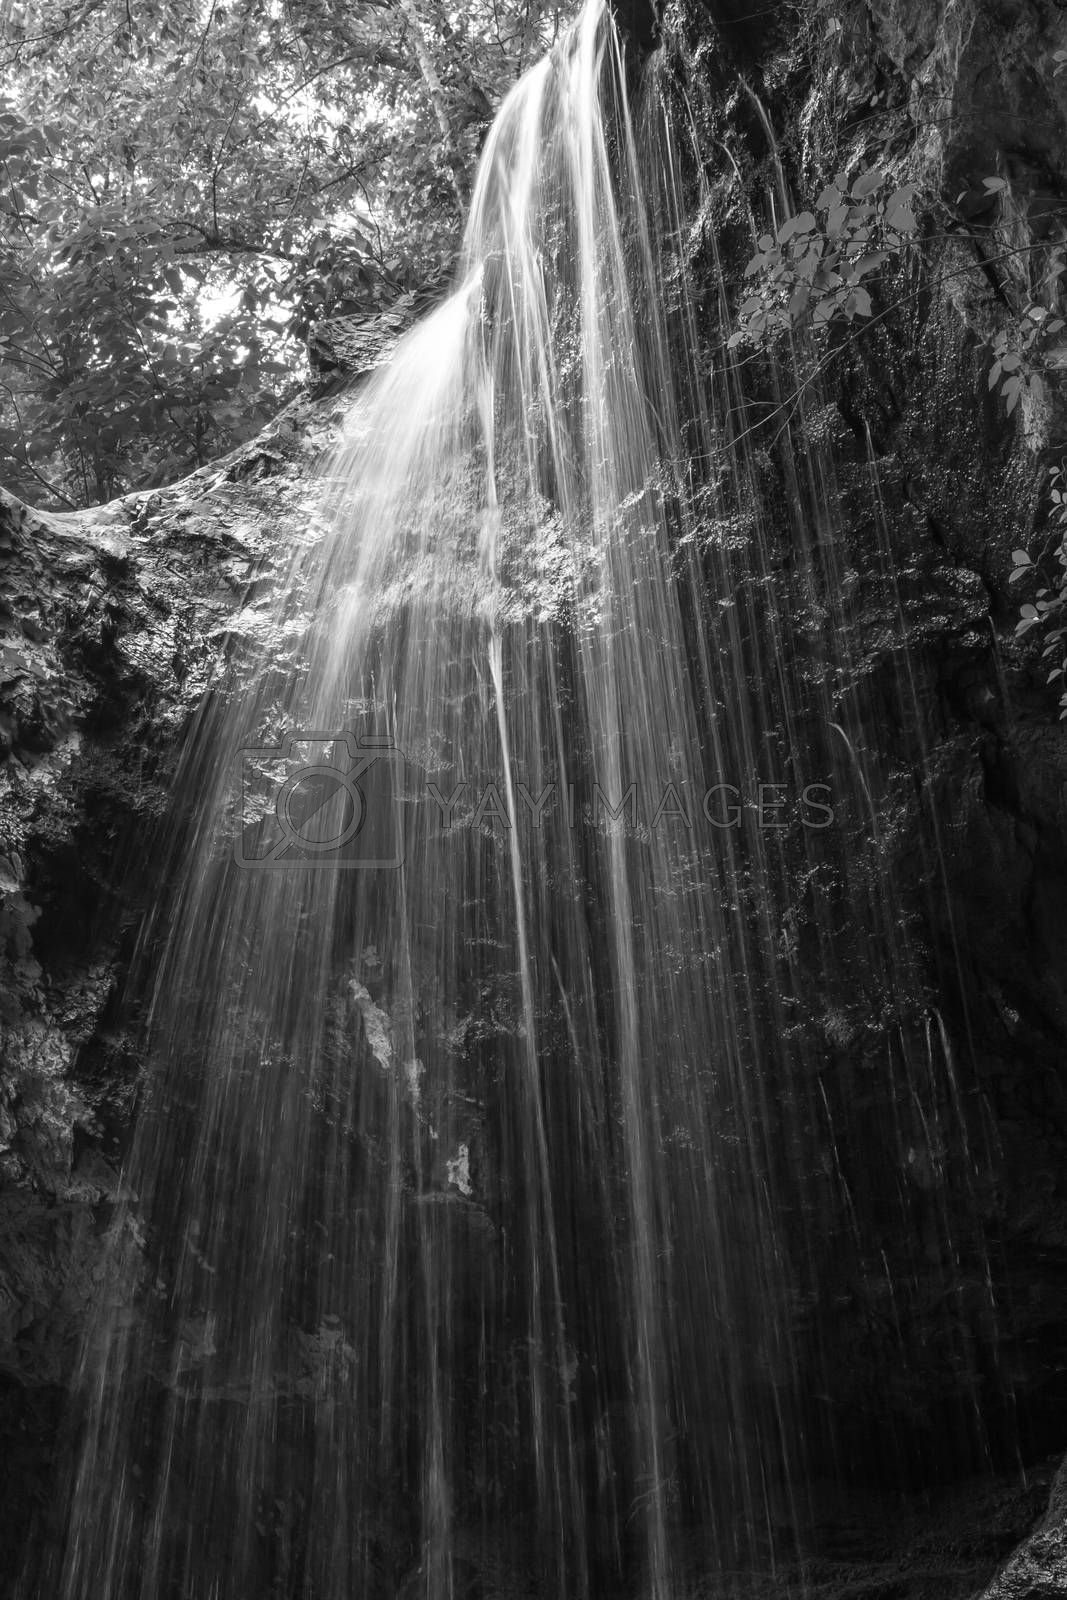 waterfall in the woods by TravisPhotoWorks